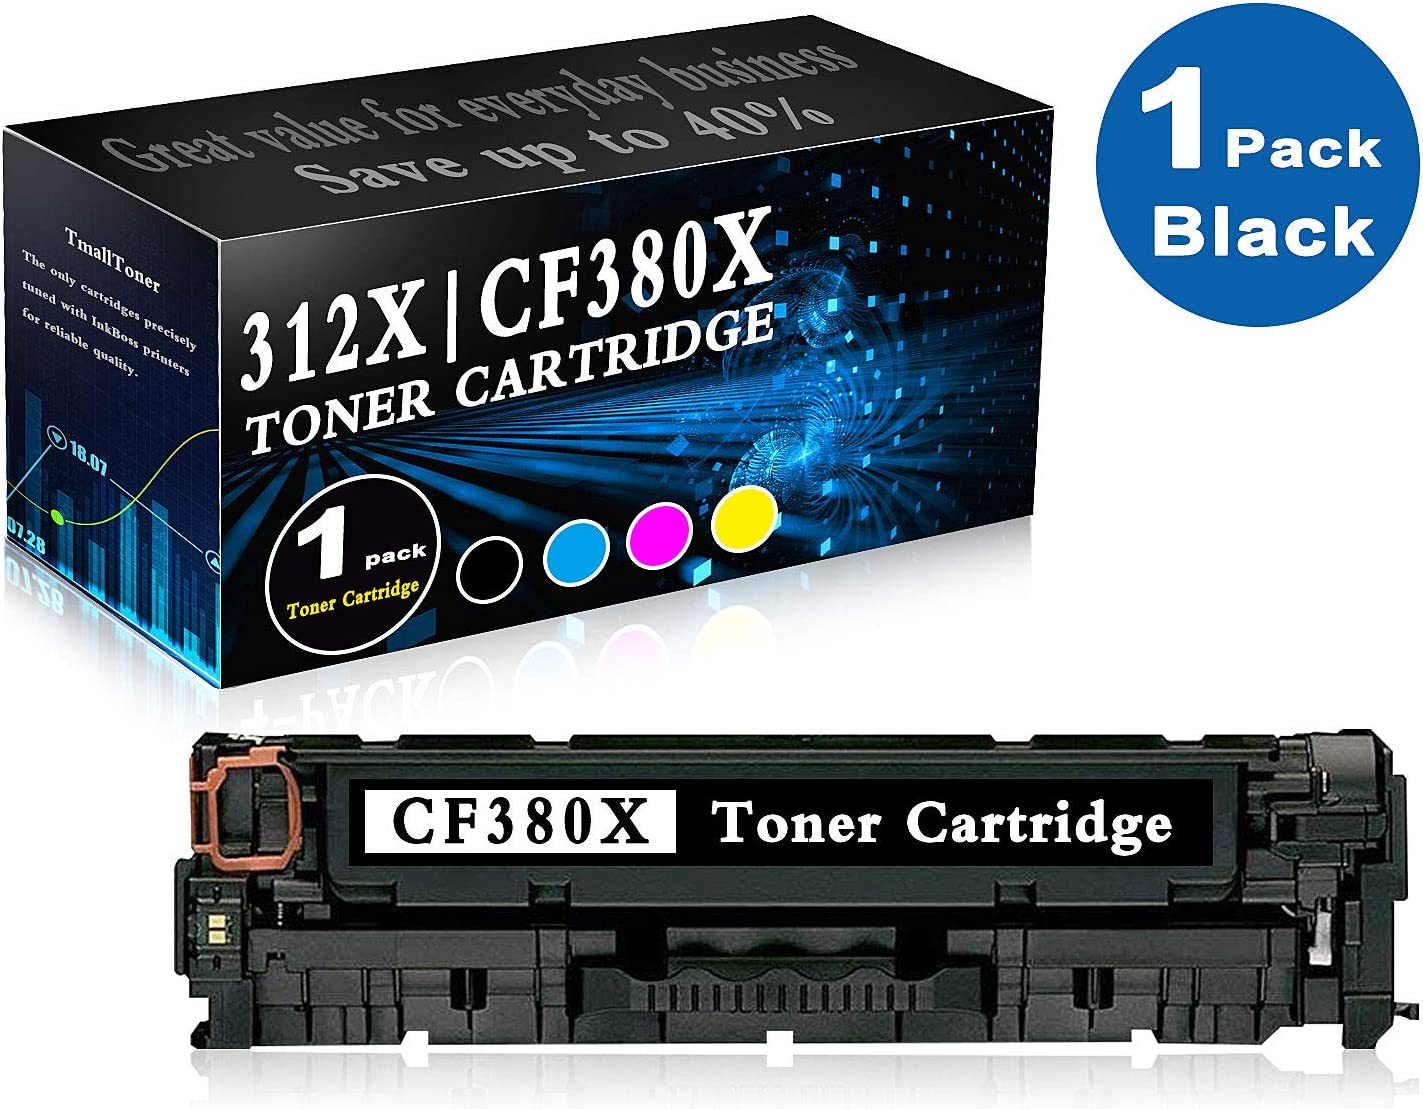 M476dn CF385A High Yield 312X CF380X 1 Pack Black Remanufactured Toner Cartridge Replacement for HP Color Laserjet Pro MFP M476dw CF386A Printer Ink CF387A M476nw